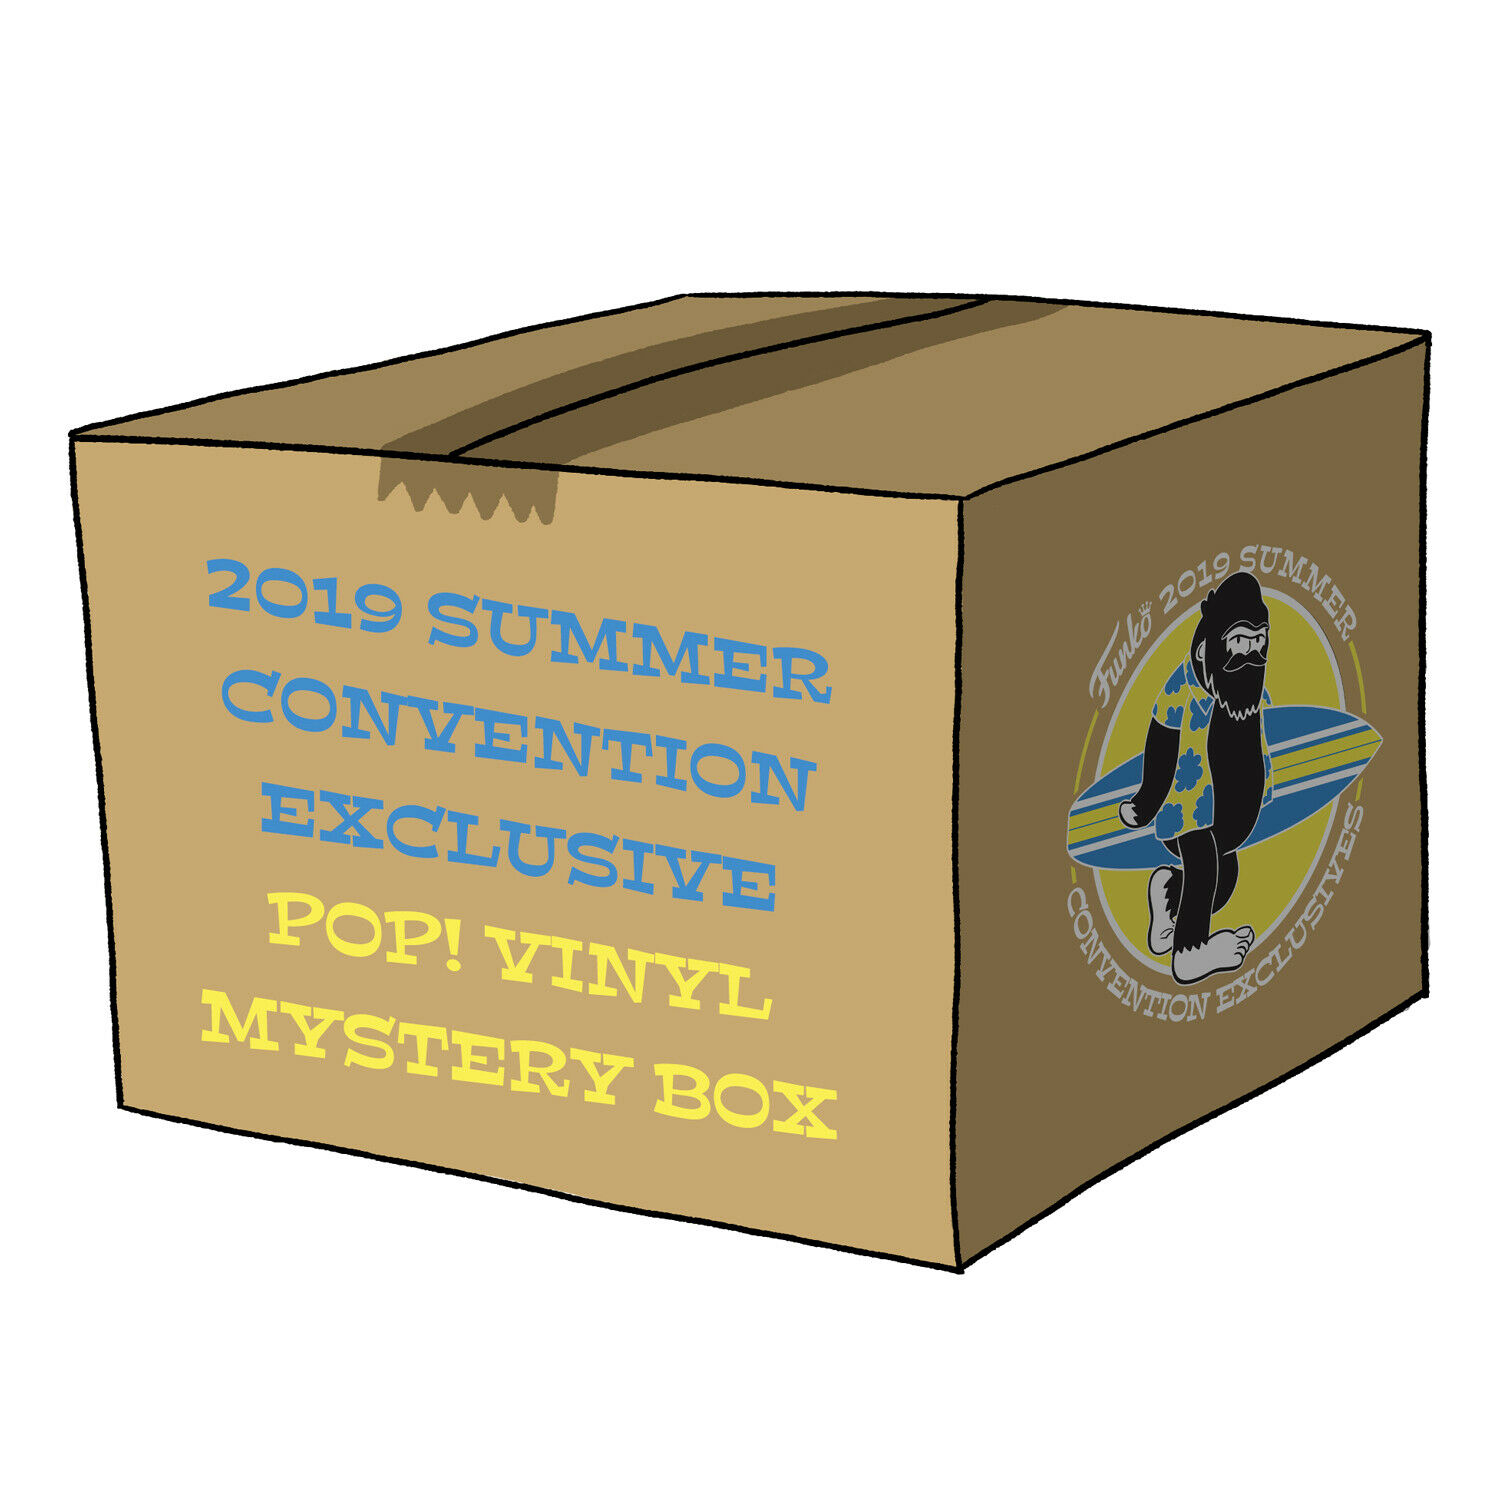 Funko Poplandia Mystery Box - 2019 Summer Convention Exclusives (6 Mystery Pops)